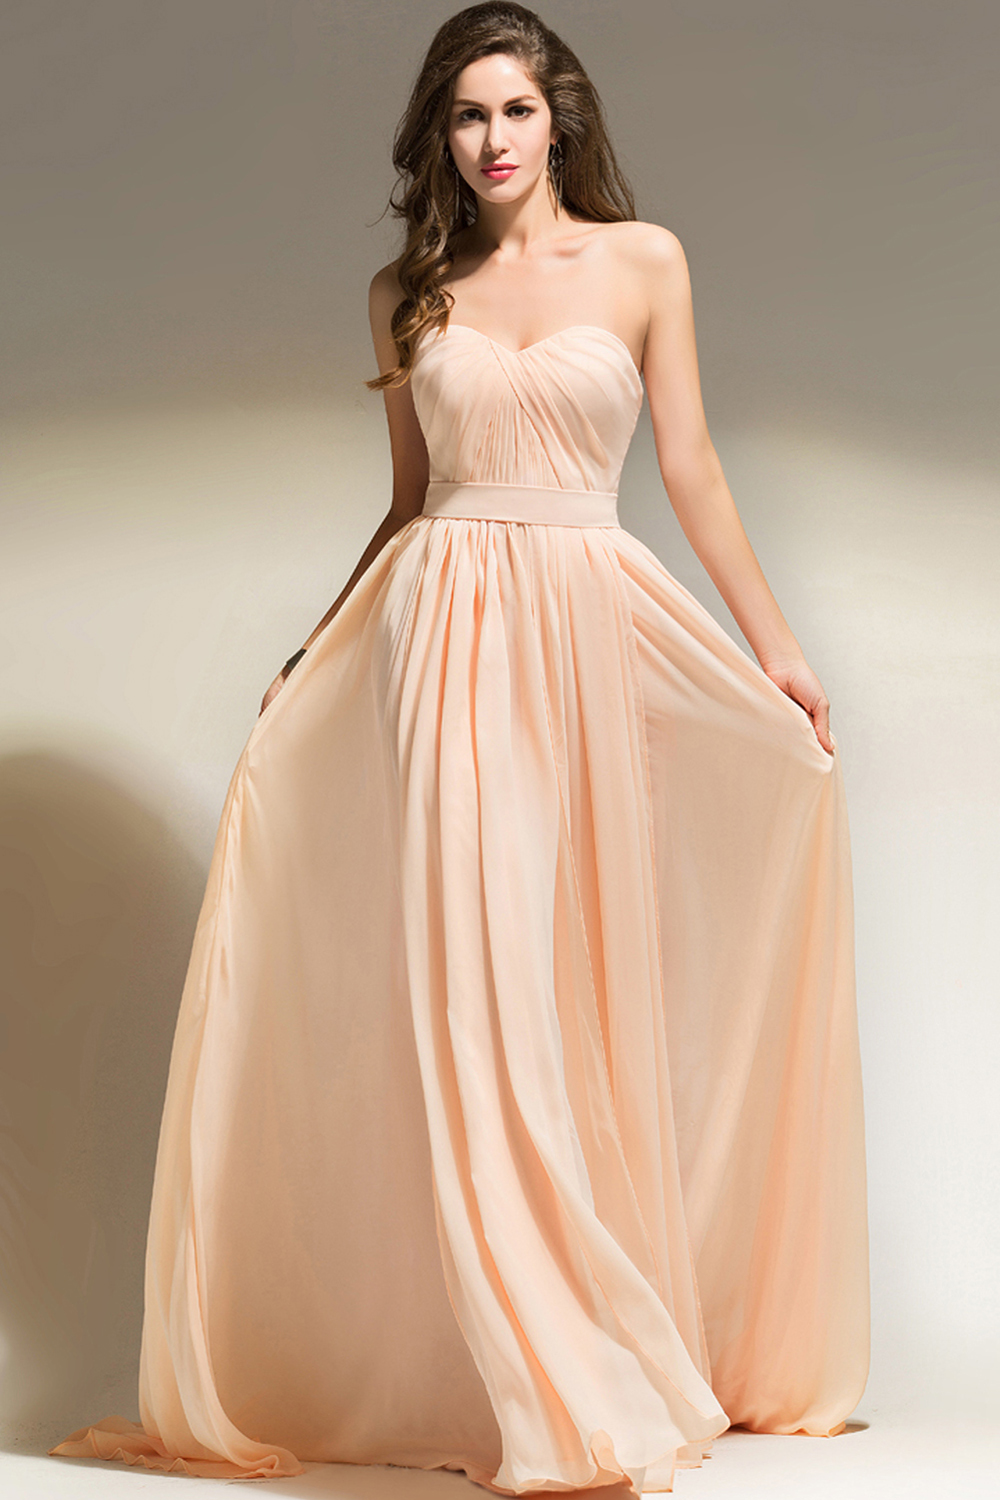 A-Line/Princess Strapless Floor Length Chiffon Bridesmaid Dress with Pleats